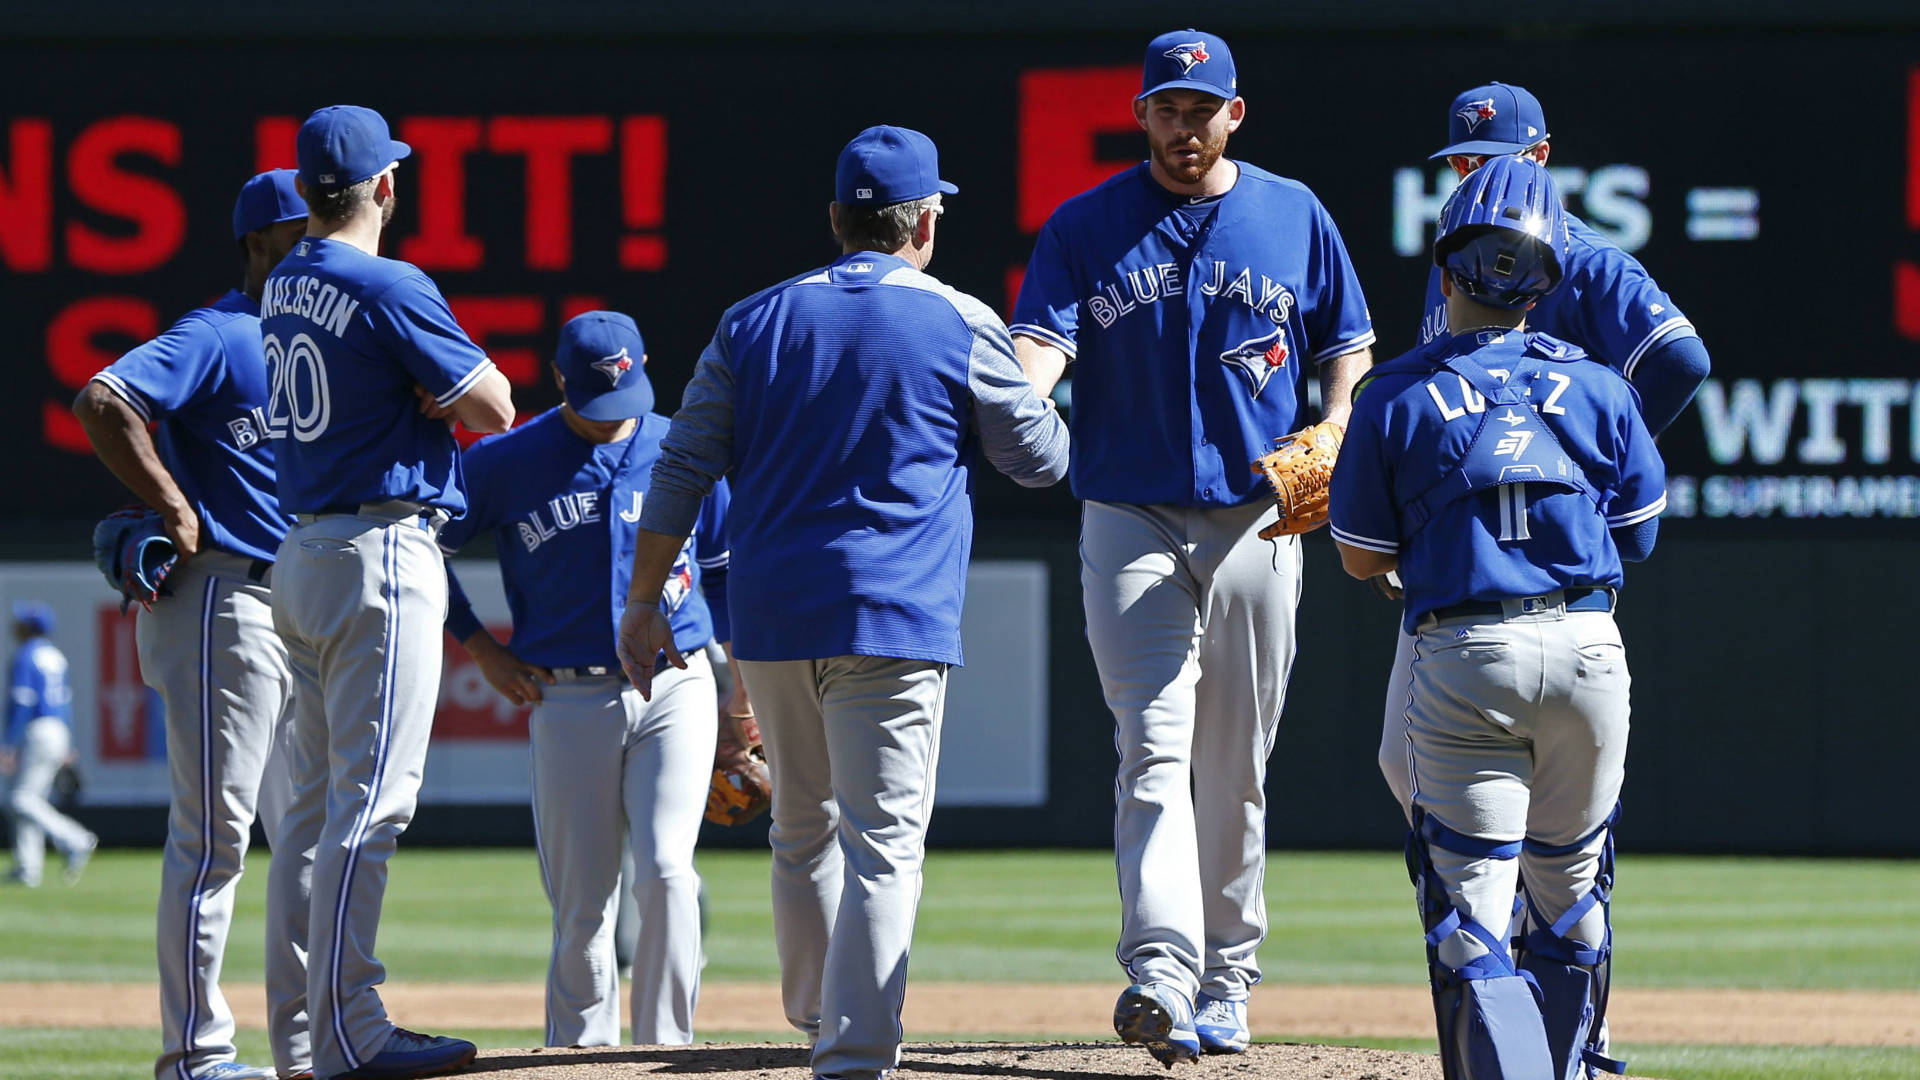 Blue Jays Takeaways: Pitching staff rocked in ugly loss